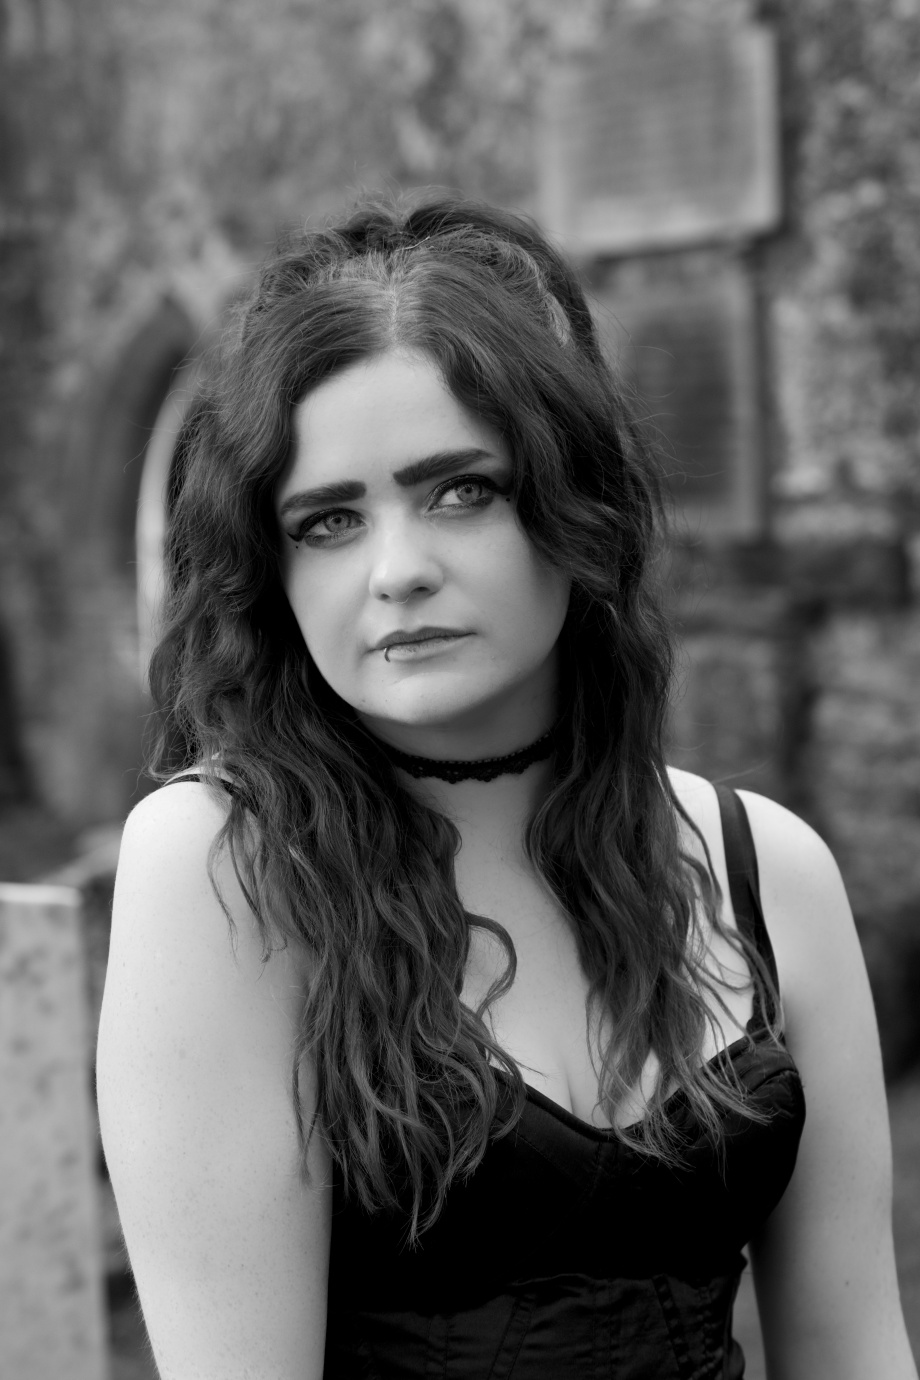 alternative, glamour, cork, kilcrea, abbey, black and white, gothic, eyes, samhain, silent movie, portrait